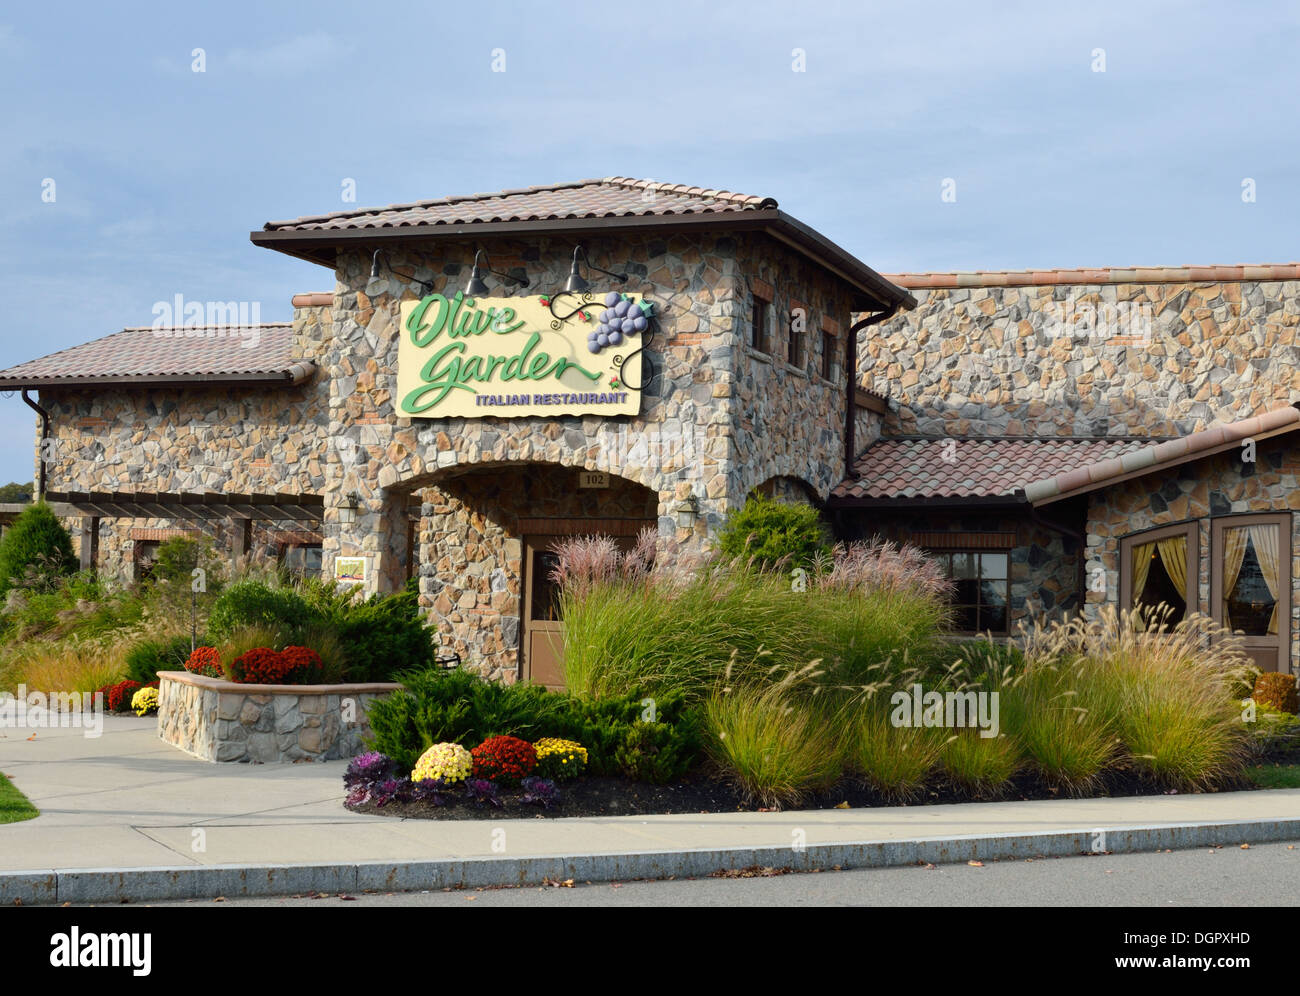 Exceptional Exterior Entrance Of Olive Garden Restaurant With Sign. USA   Stock Image